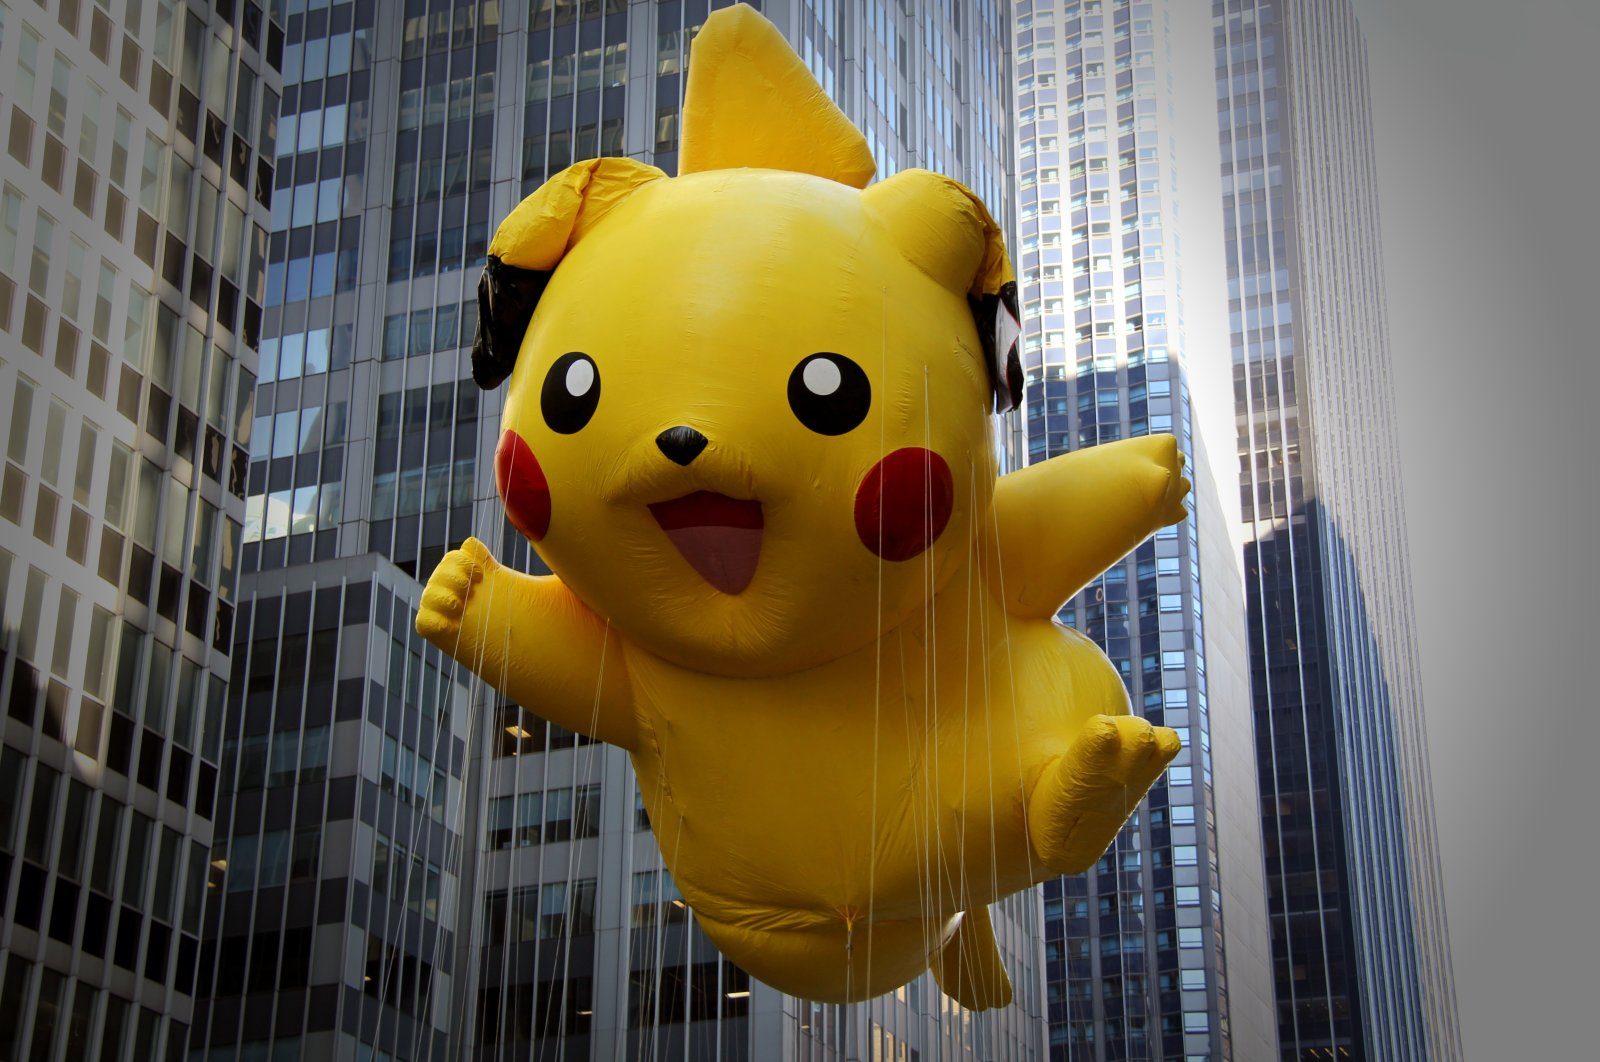 A Pokemon Pikachu balloon can be seen at the 86th annual Macy's Thanksgiving Day parade in New York, U.S., Nov. 22, 2012. (Shutterstock Photo)